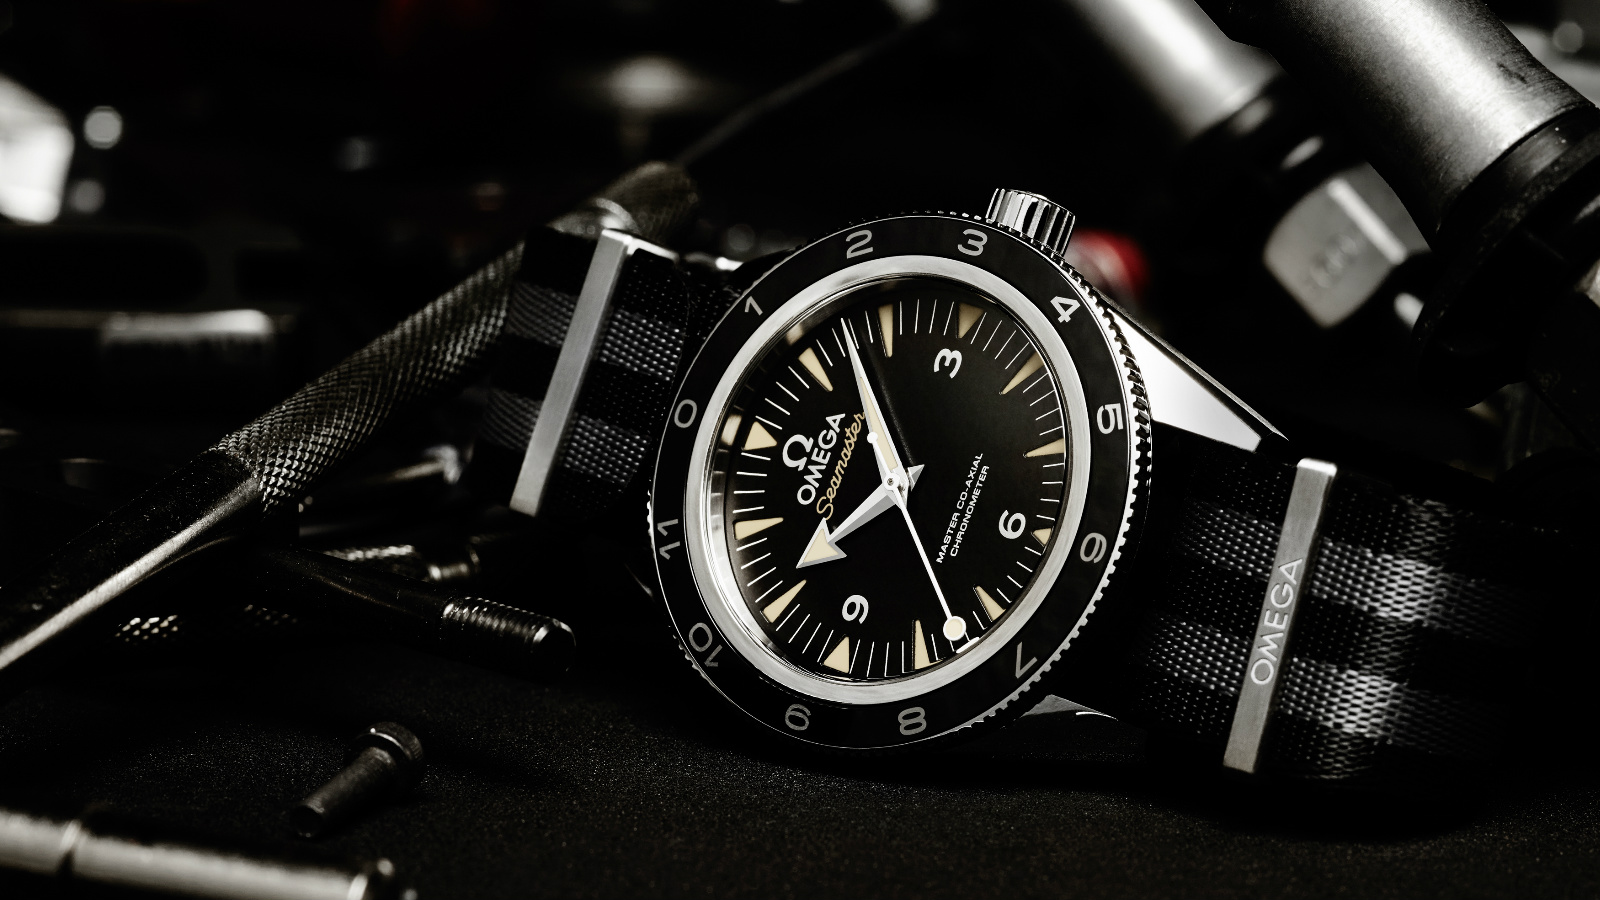 OMEGA_Seamaster 300 SPECTRE Limited Edition_Lifestyle_3_1600x900